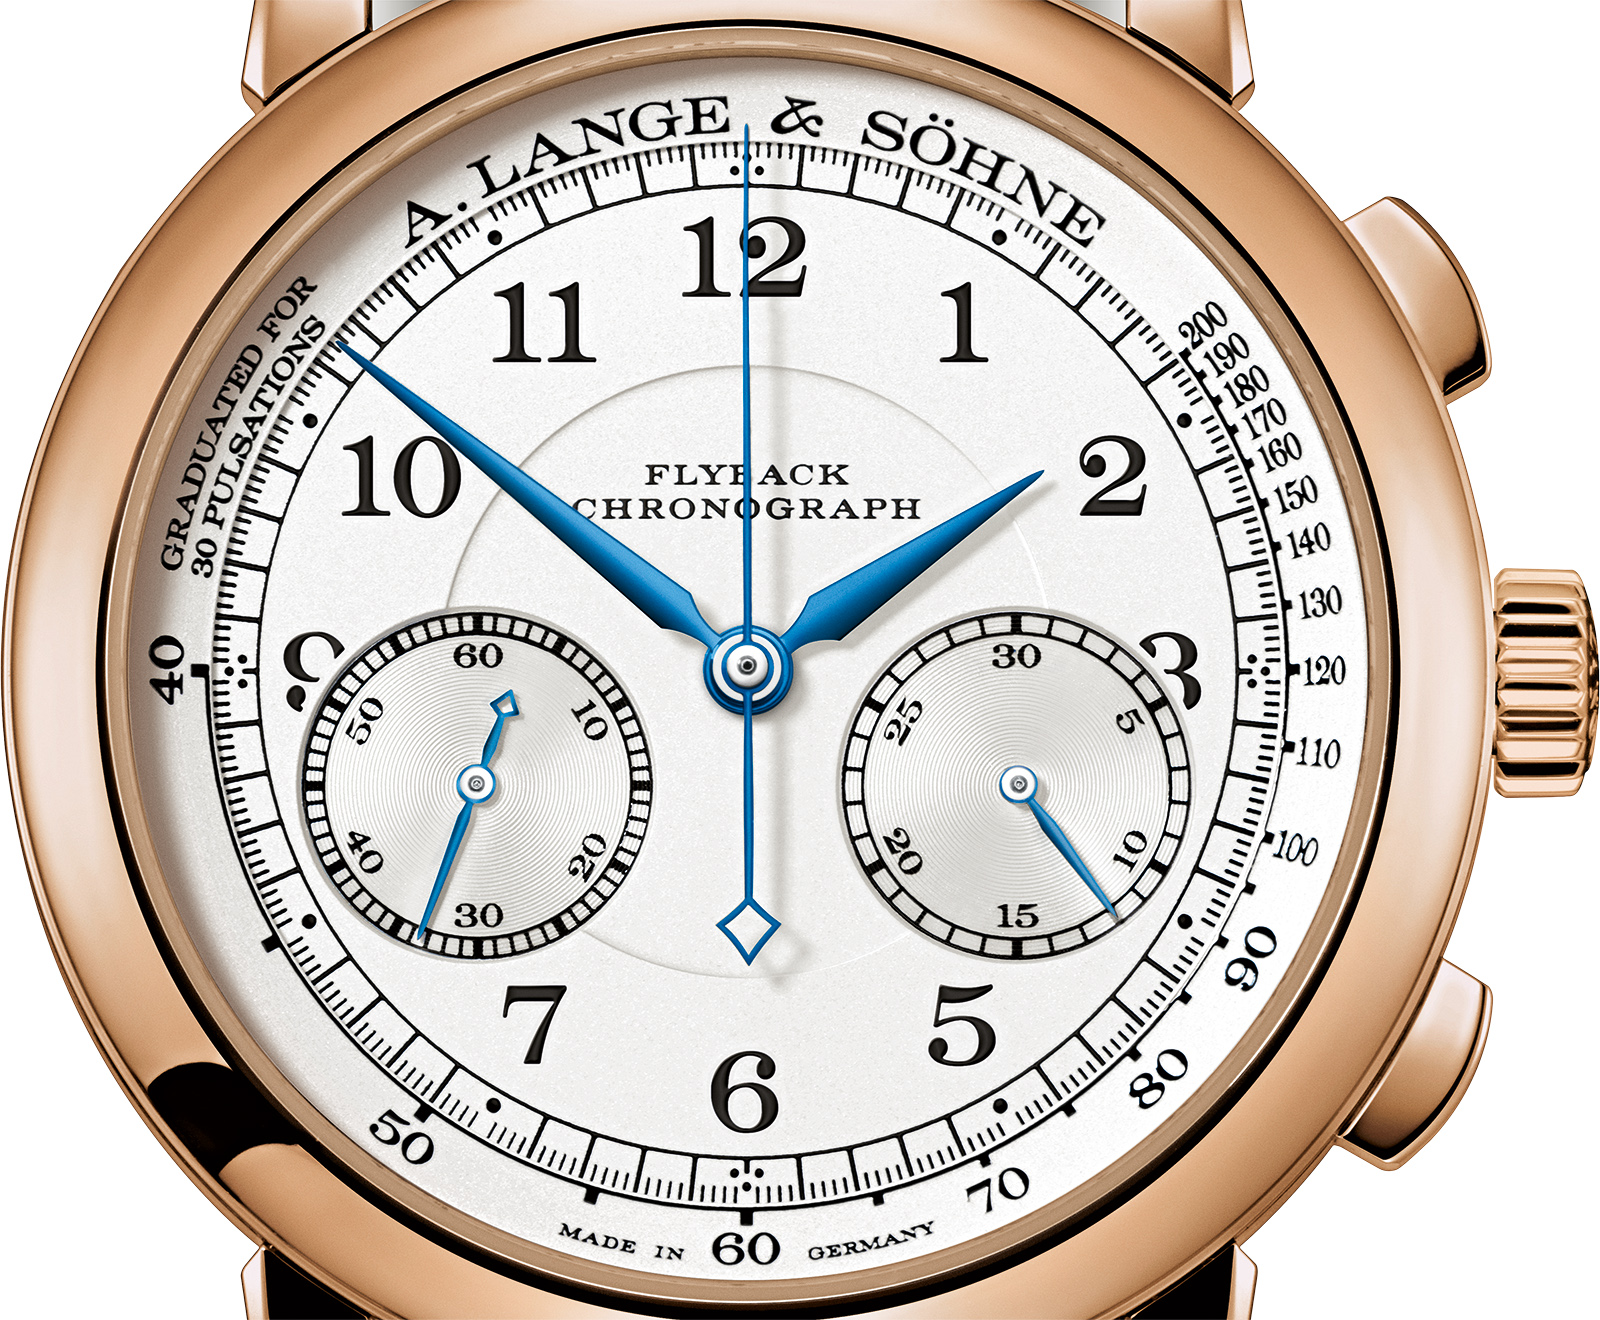 Lange 1815 Chronograph Pink Gold silver dial